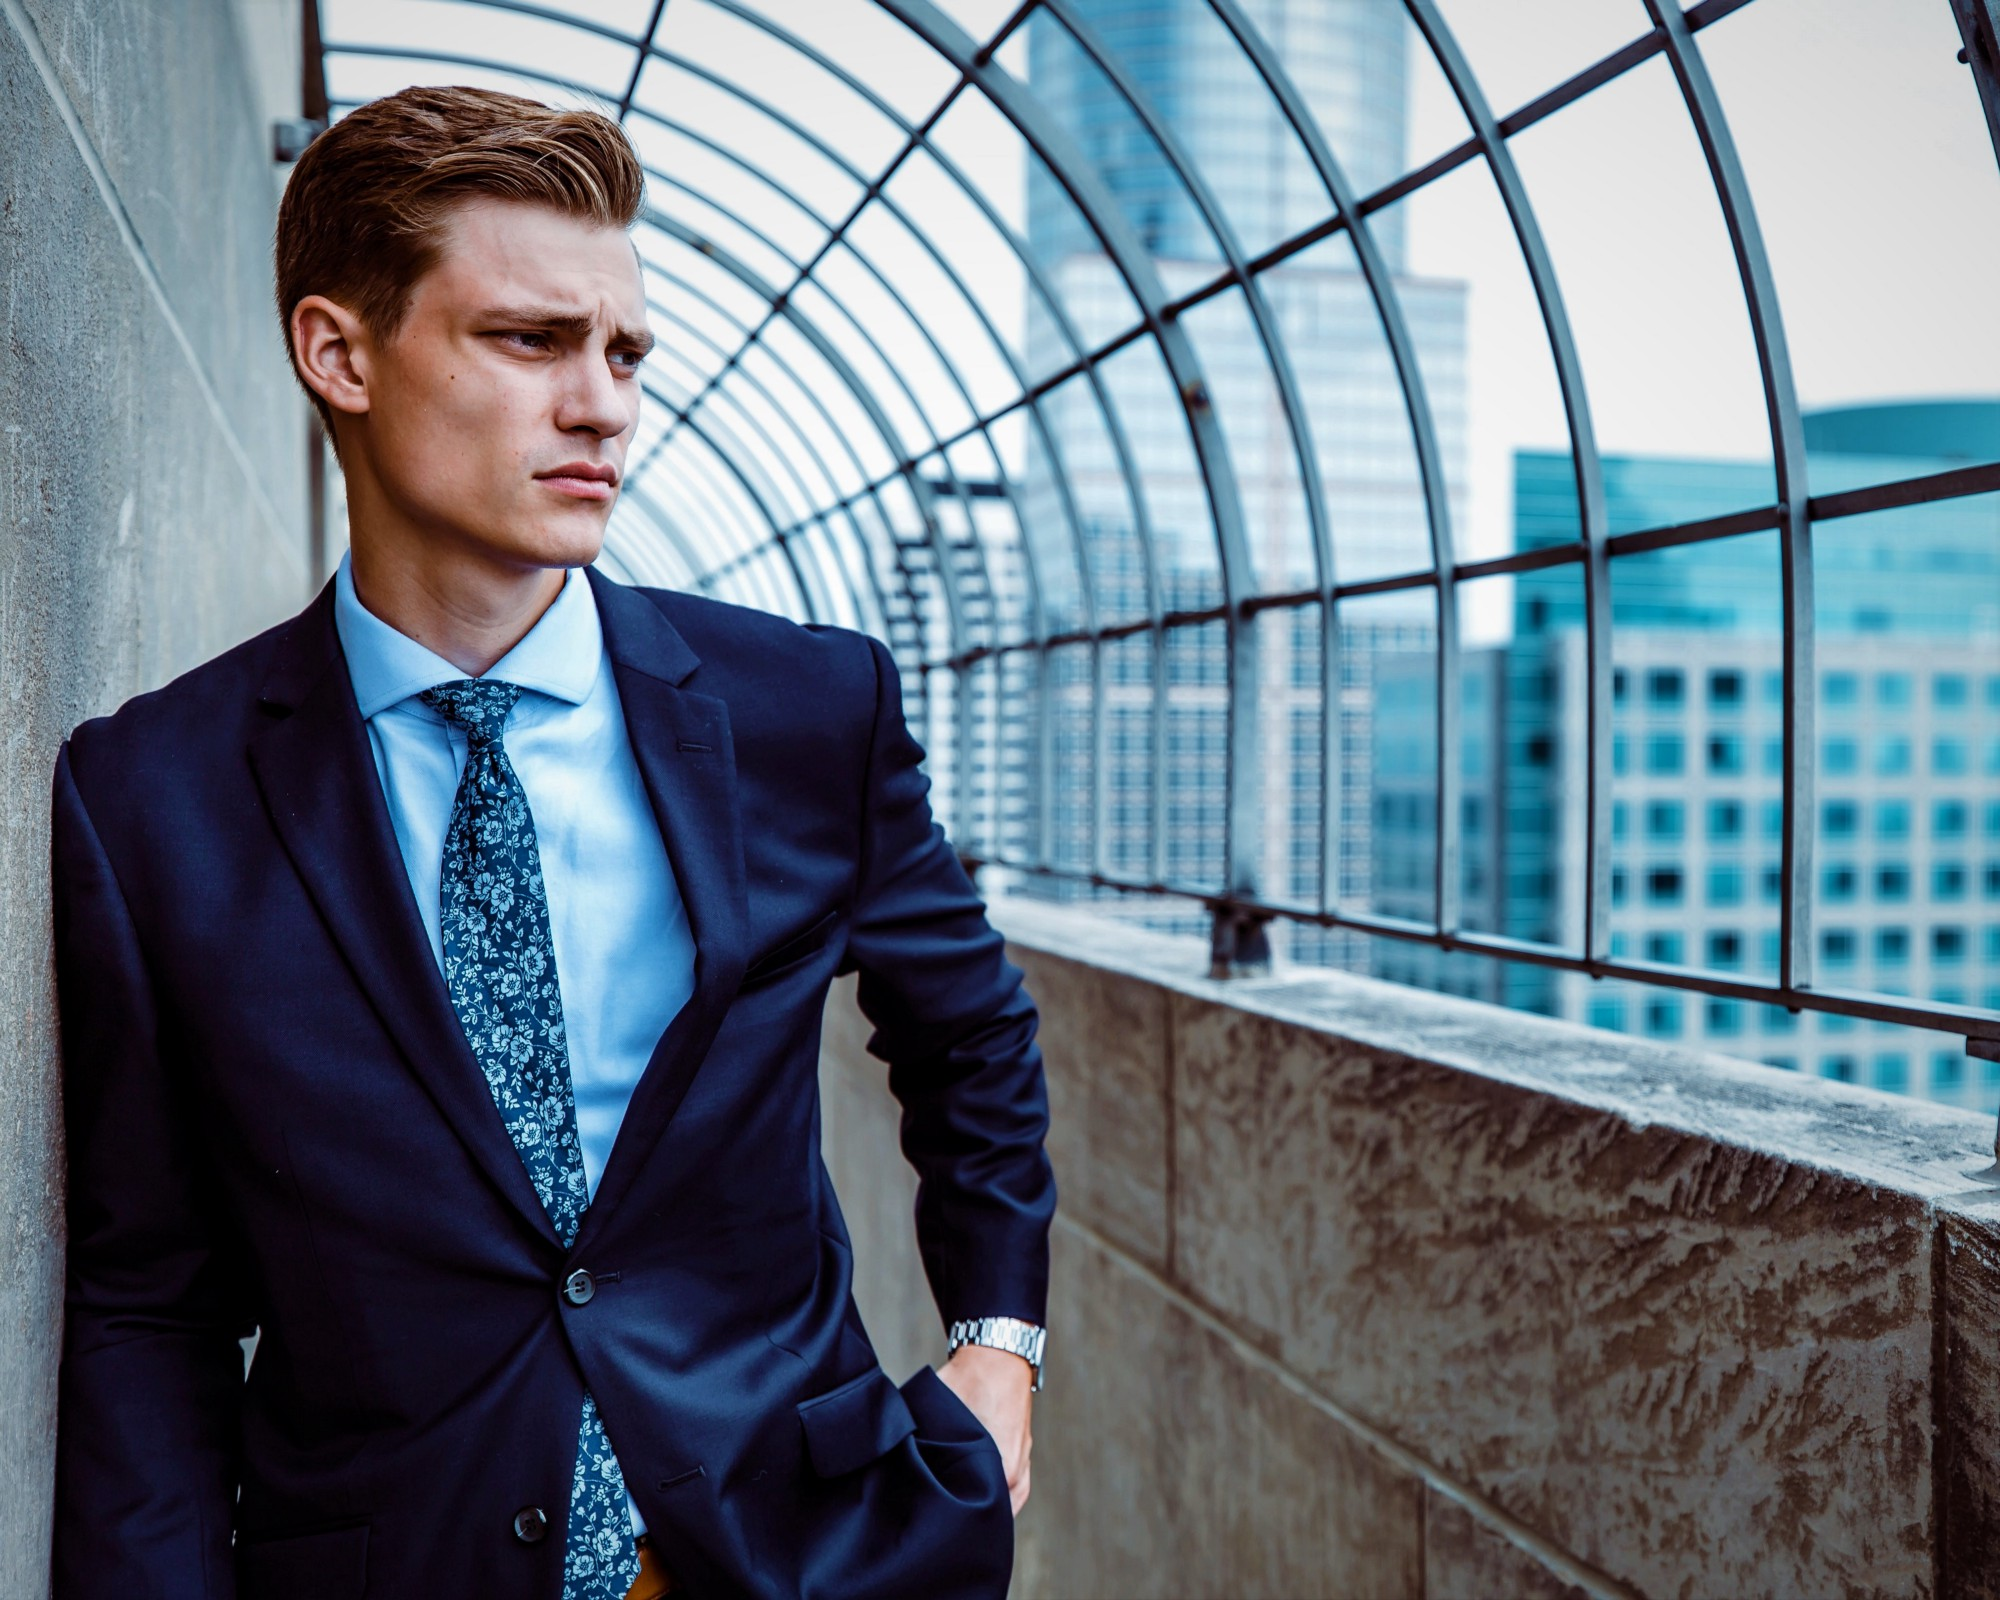 man in blue business suit and tie leaning against wall looking out over city skyline